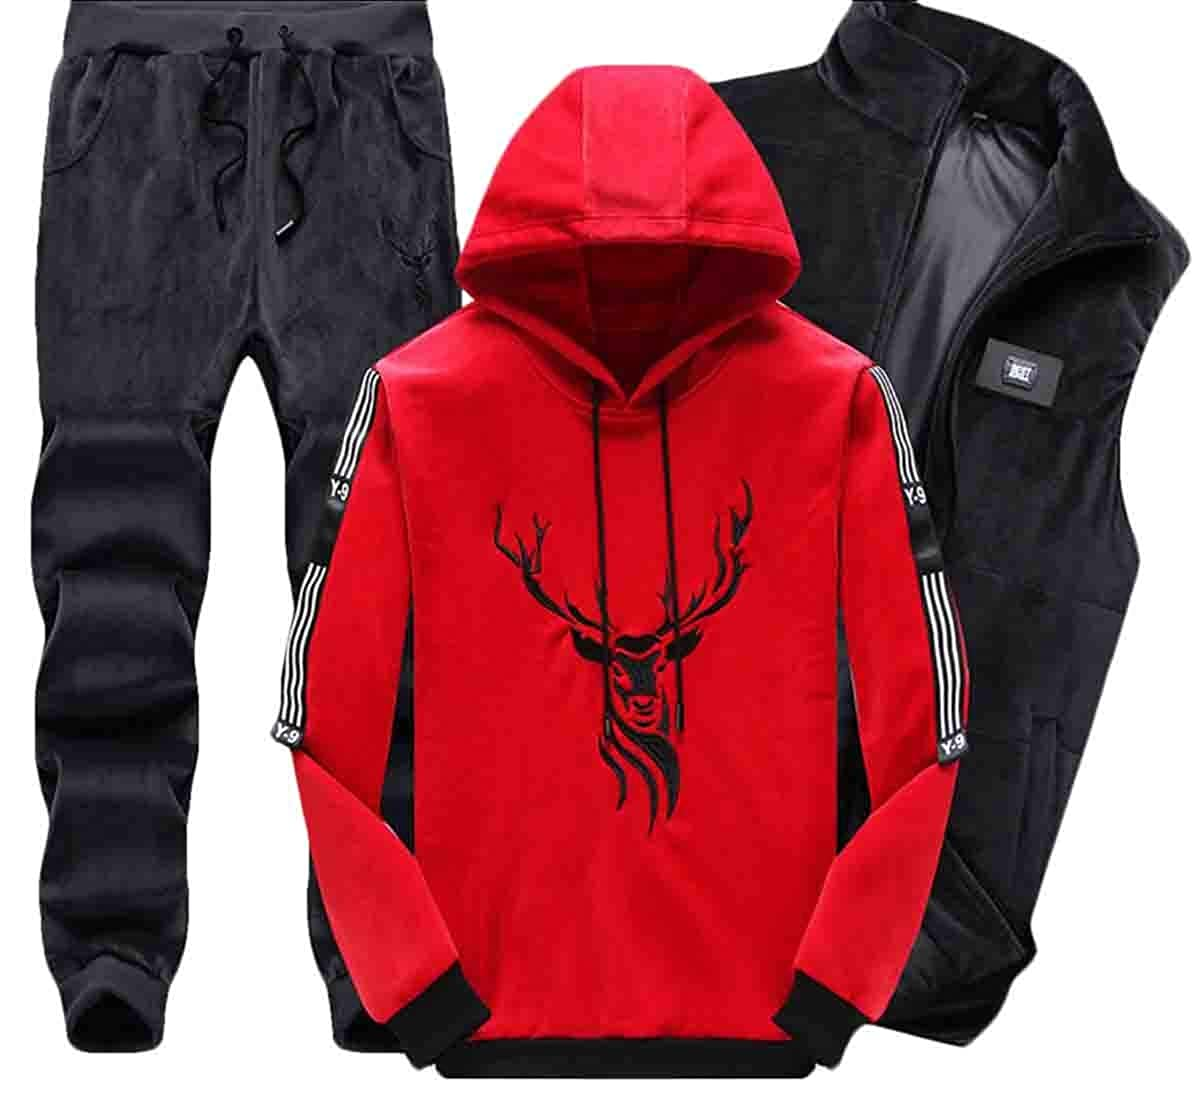 Esast Men's Warm Hoodies Sweatshirts Vest and Pants Outfit Tracksuit